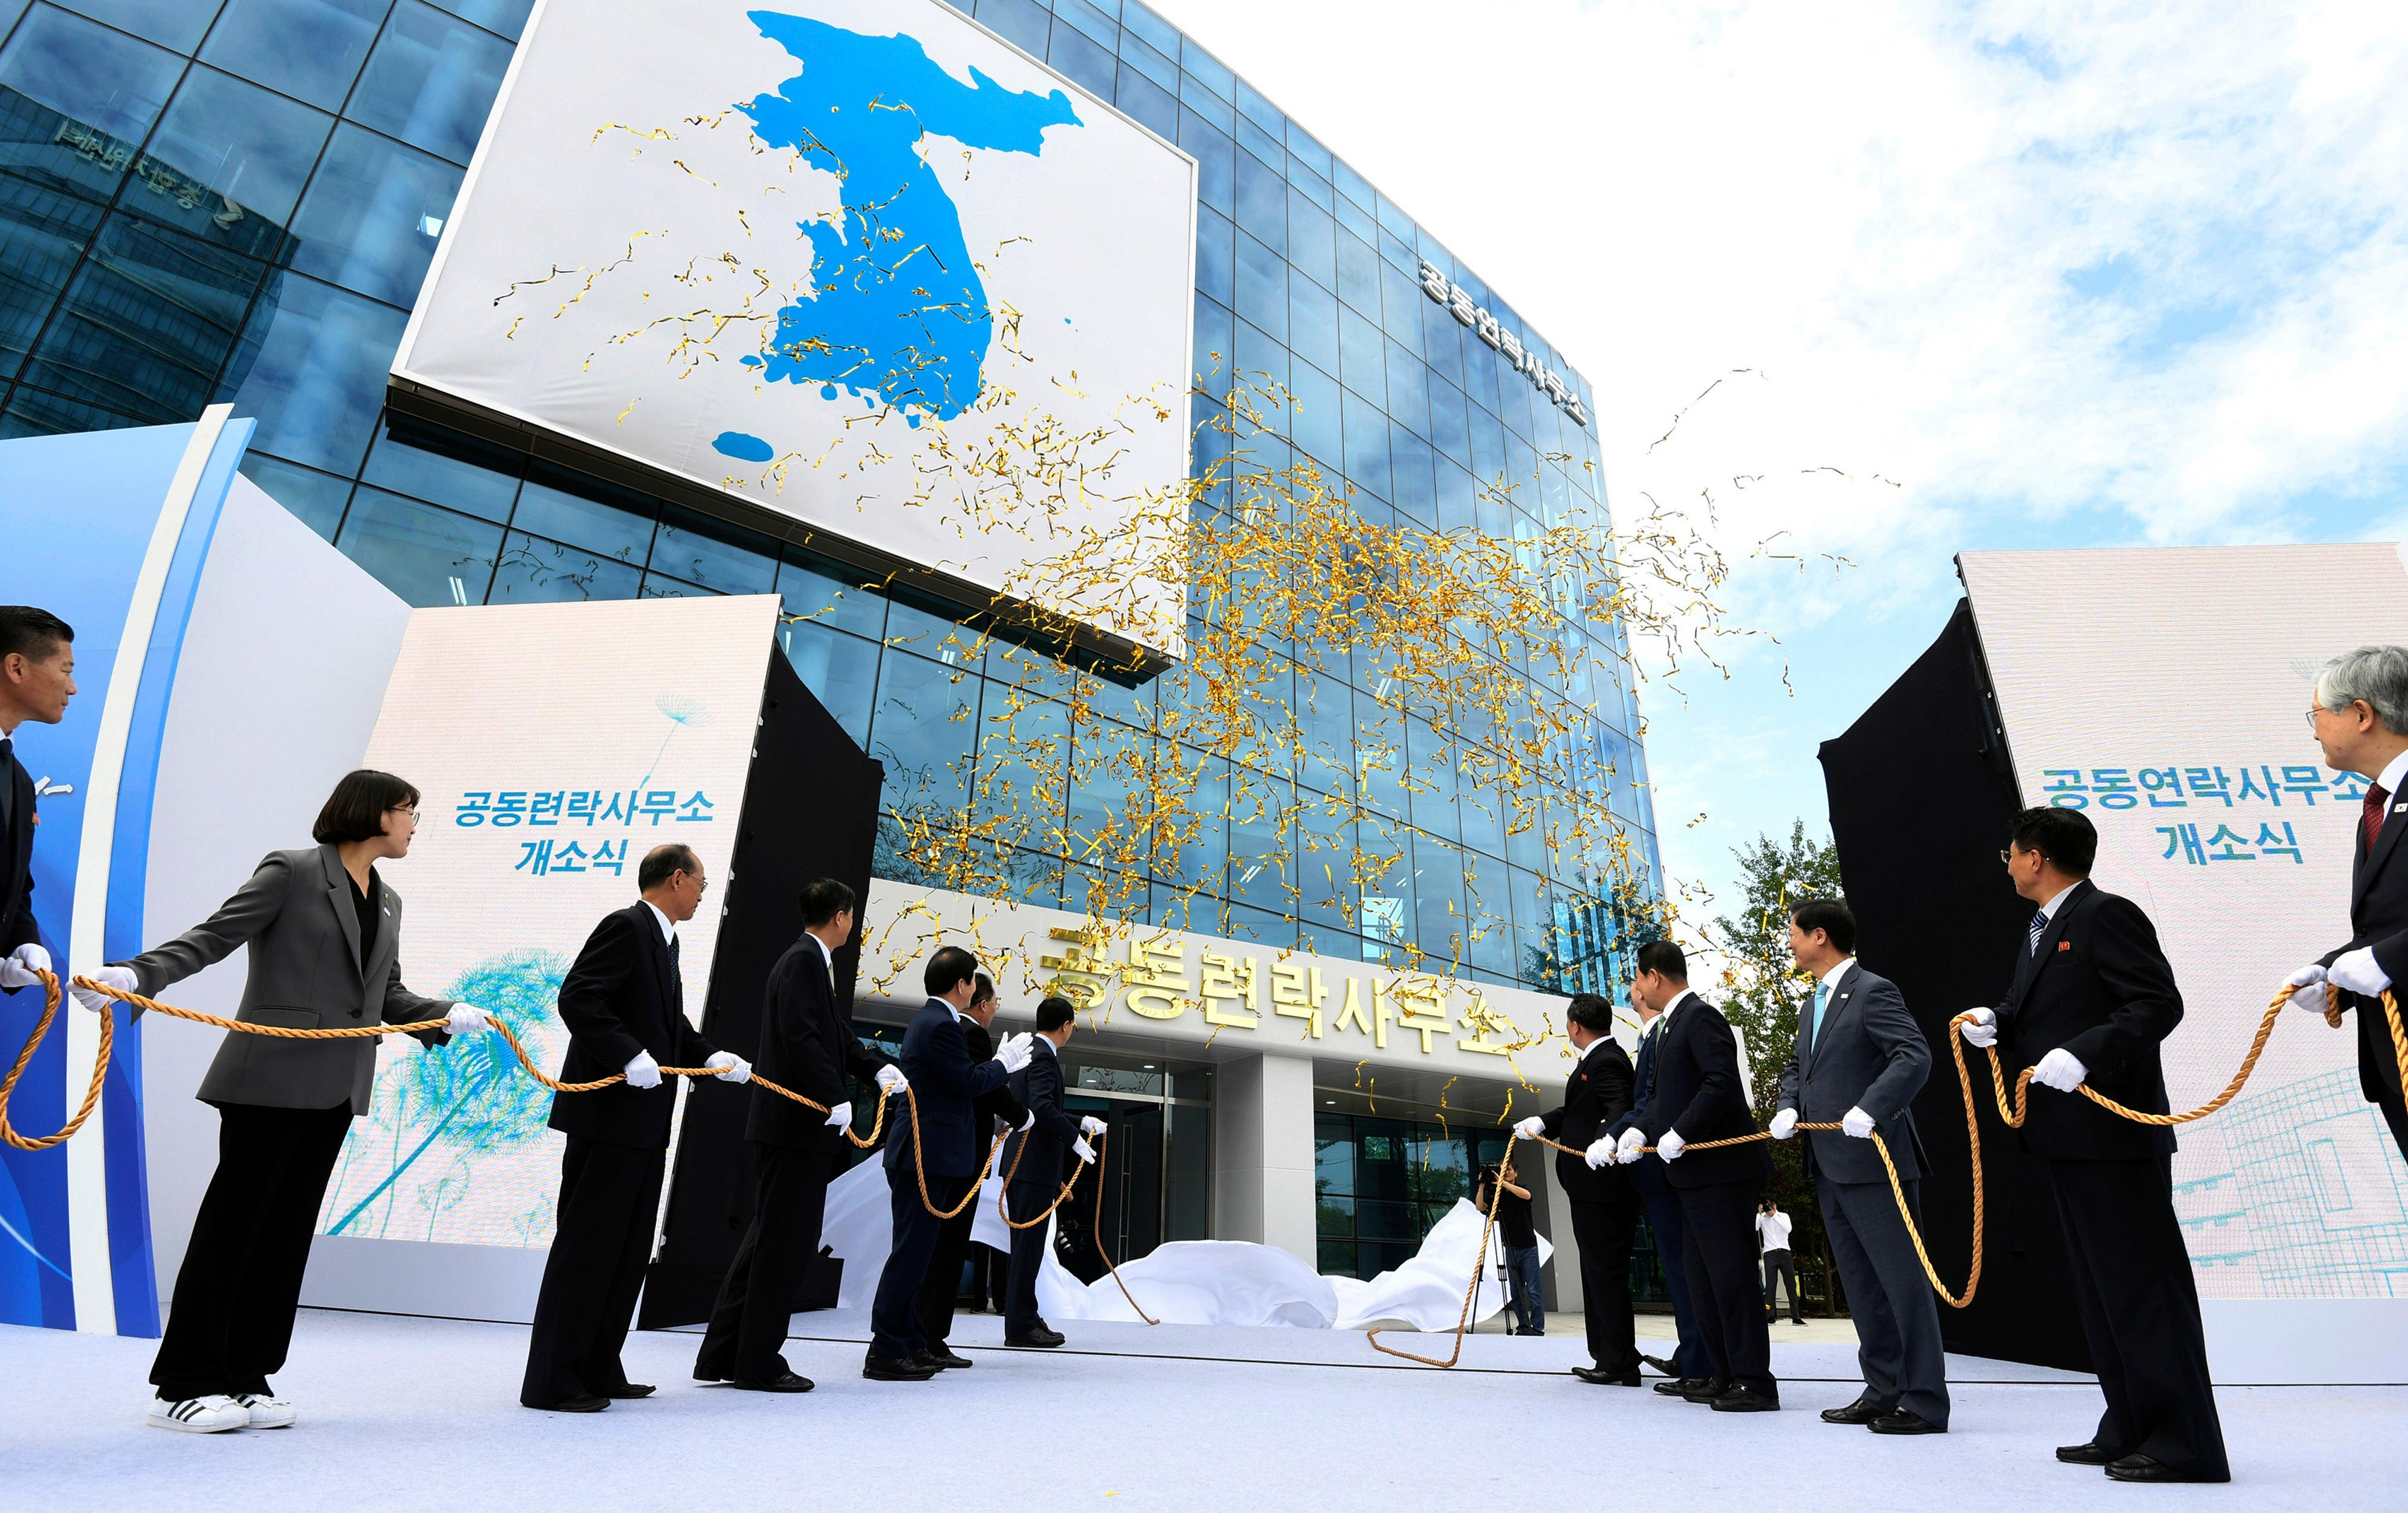 FILE - In this Sept. 14, 2018, file photo, South Korea's Unification Minister Cho Myoung-gyon, center left, and Ri Son Gwon, chairman of the North's Committee for the Peaceful Reunification, center right, attend at an opening ceremony for two Koreas' first liaison office in Kaesong, North Korea. (Korea Pool/Yonhap via AP, File)